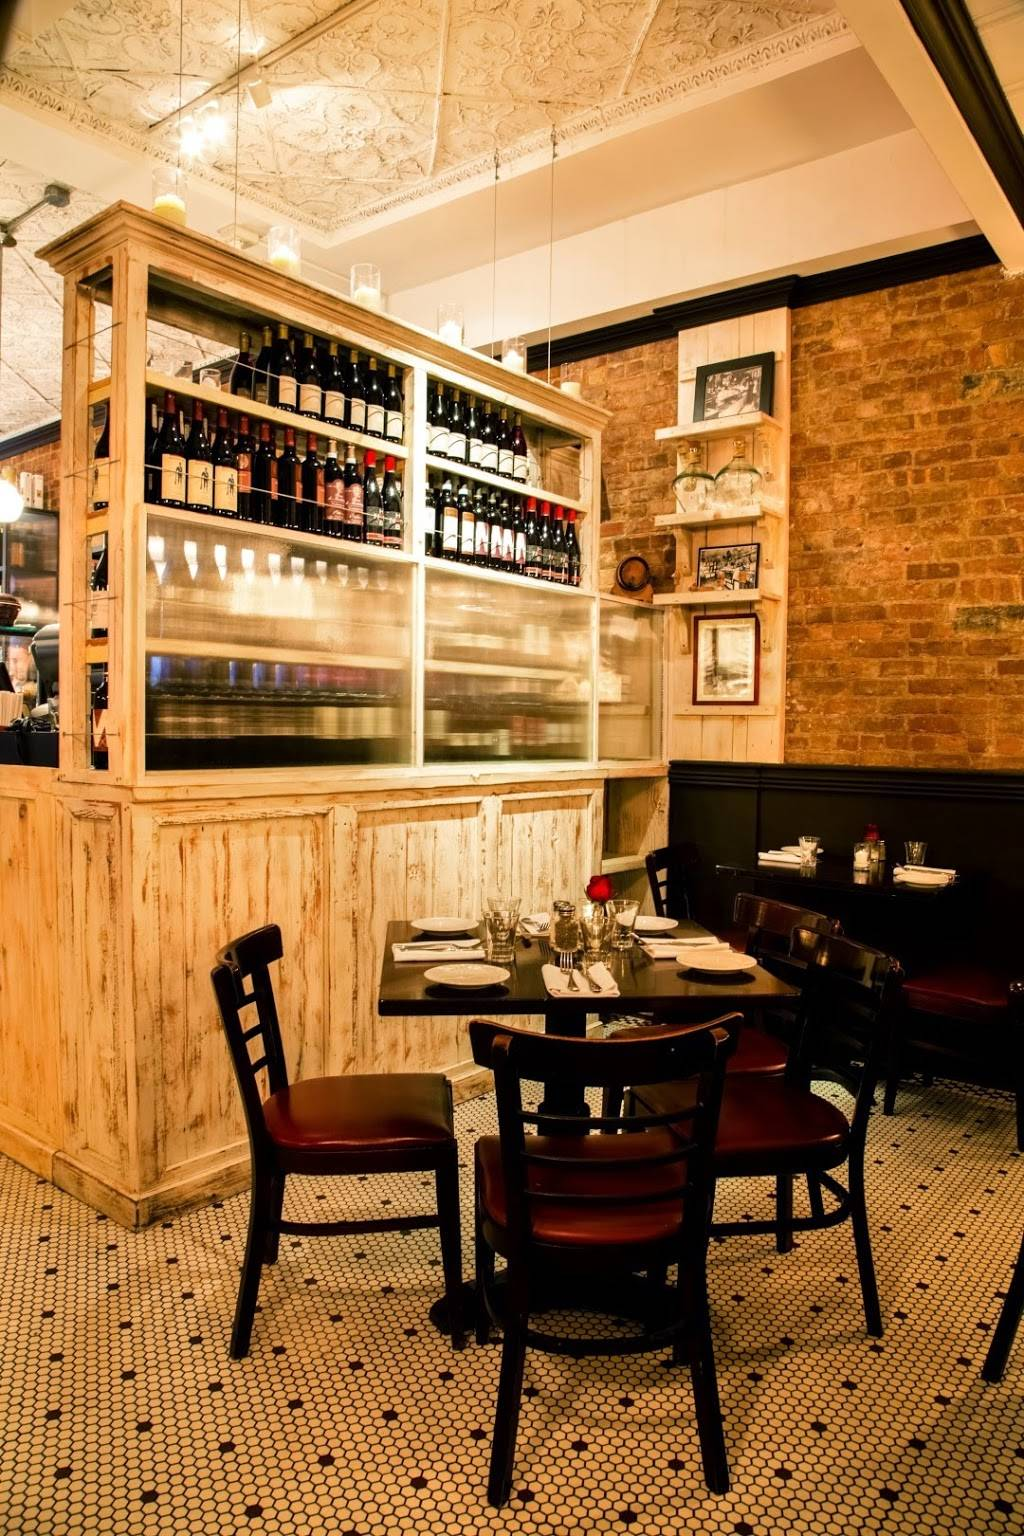 Tre Otto | restaurant | 1410 Madison Ave, New York, NY 10029, USA | 2128608880 OR +1 212-860-8880